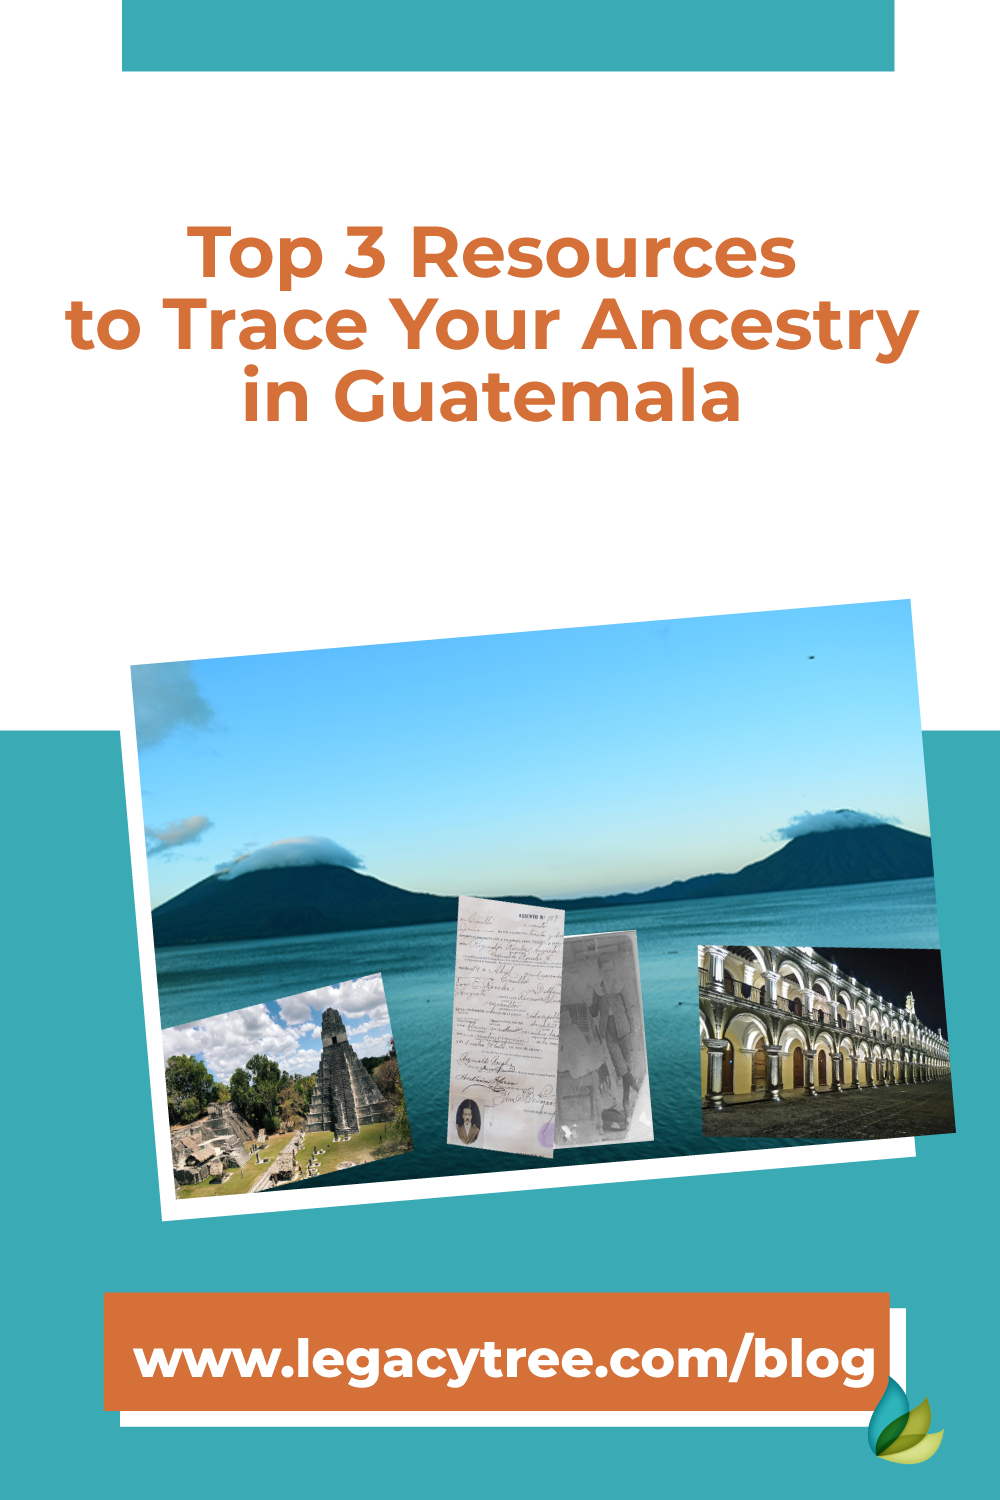 Legacy Tree works with researchers around the globe to access records for our clients. Today on the blog we share the top resources for tracing your Guatemalan ancestry.